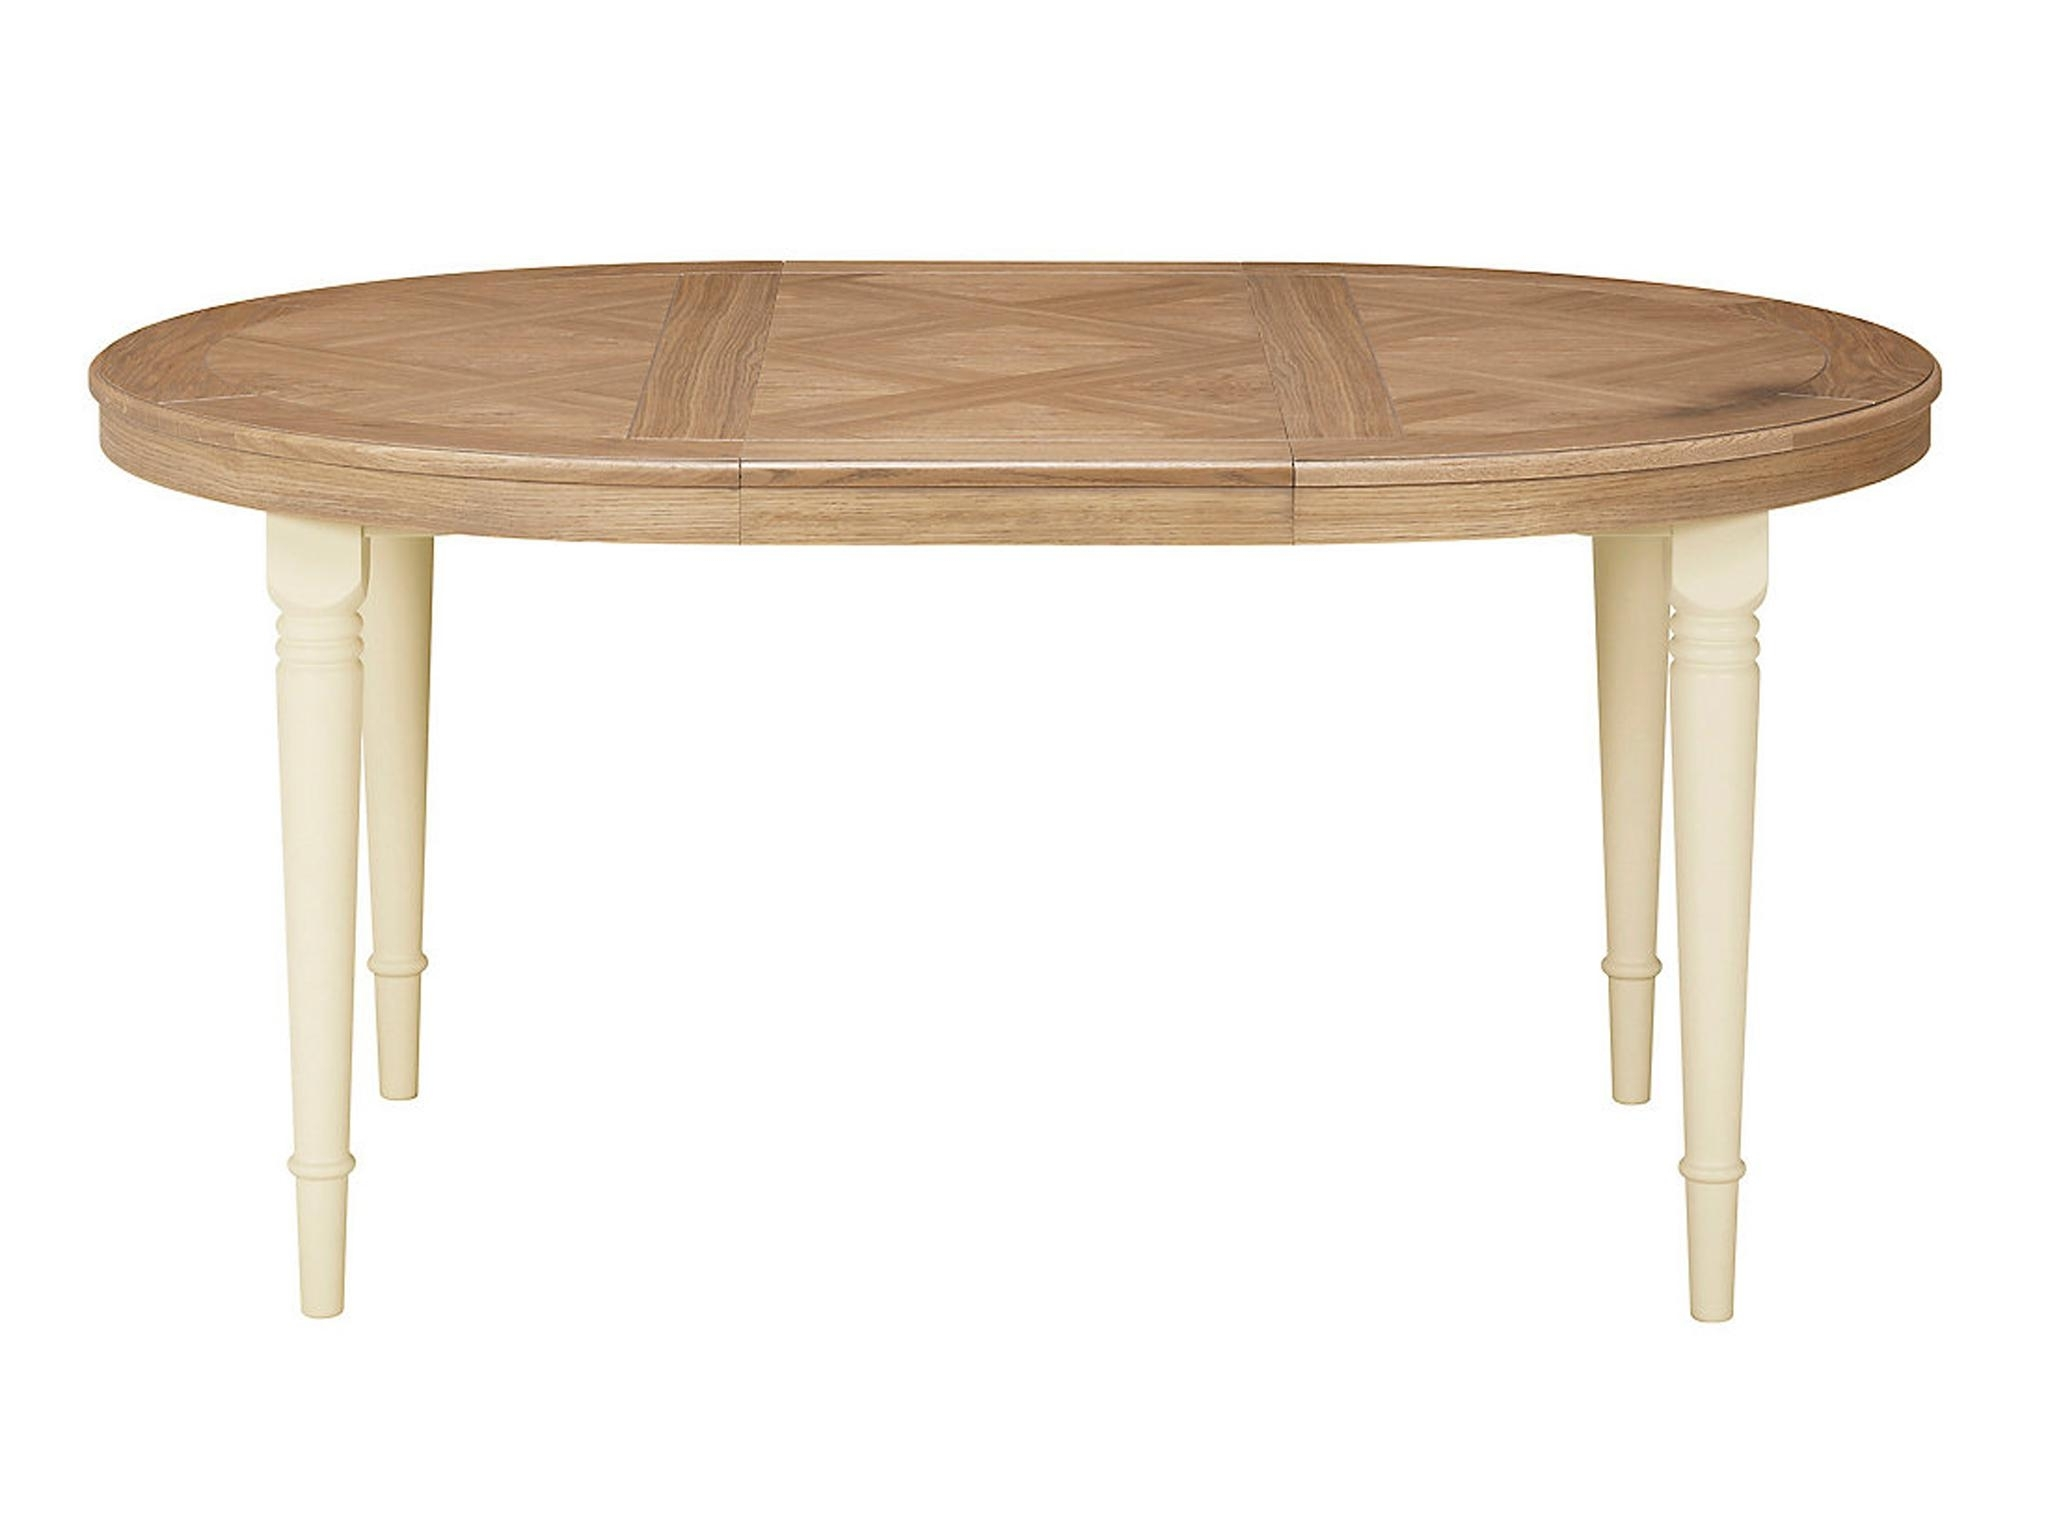 Extended Round Dining Tables within Fashionable 10 Best Extendable Dining Tables